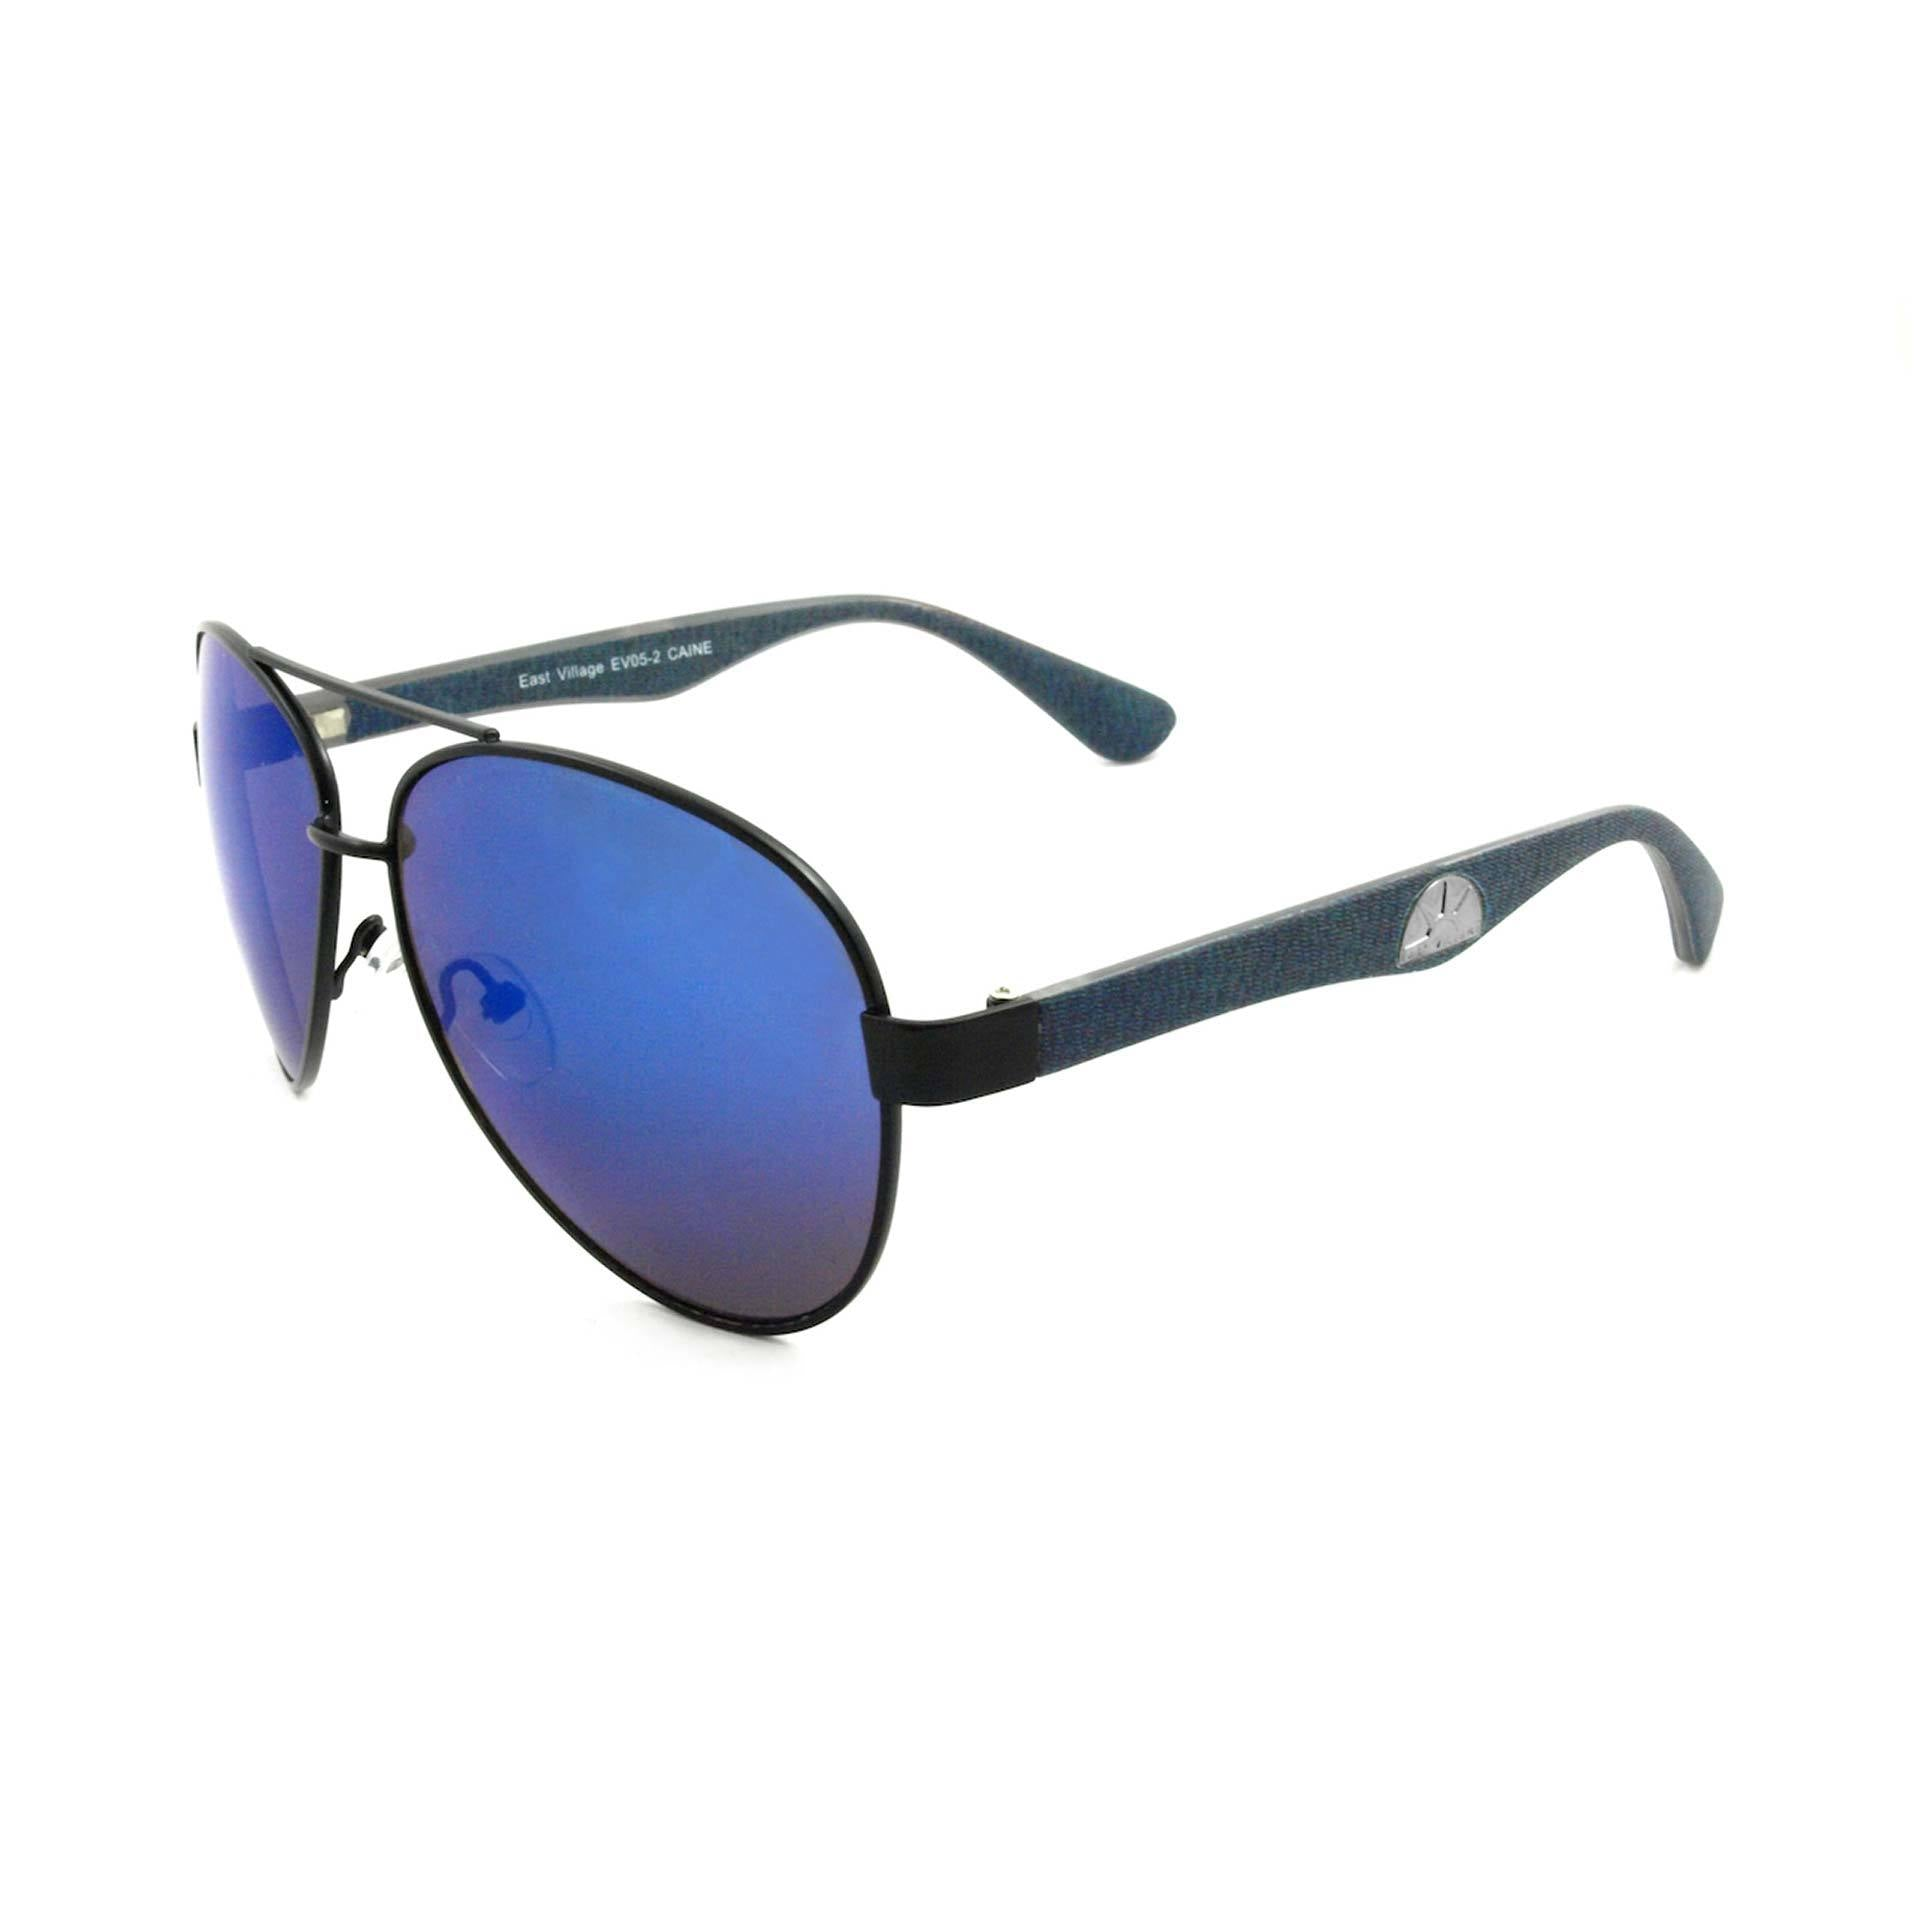 'Caine' Metal Frame Aviator Sunglasses With Blue Temples